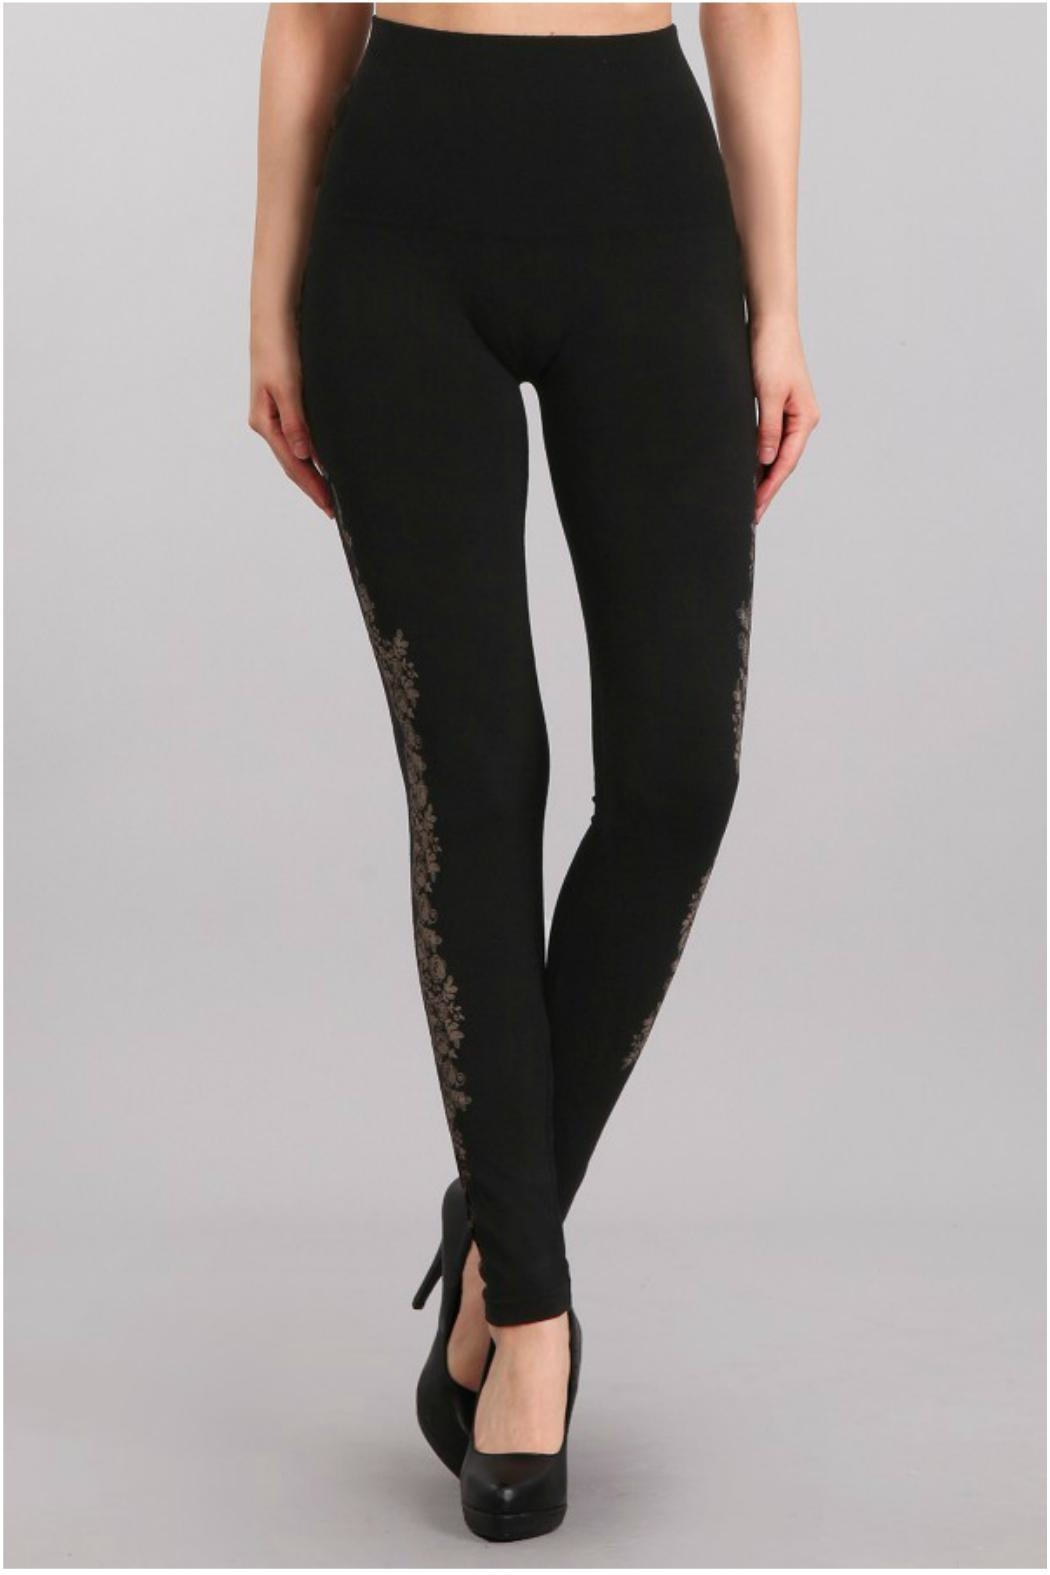 M. Rena High Waisted Lace Legging from New York by Gado ...